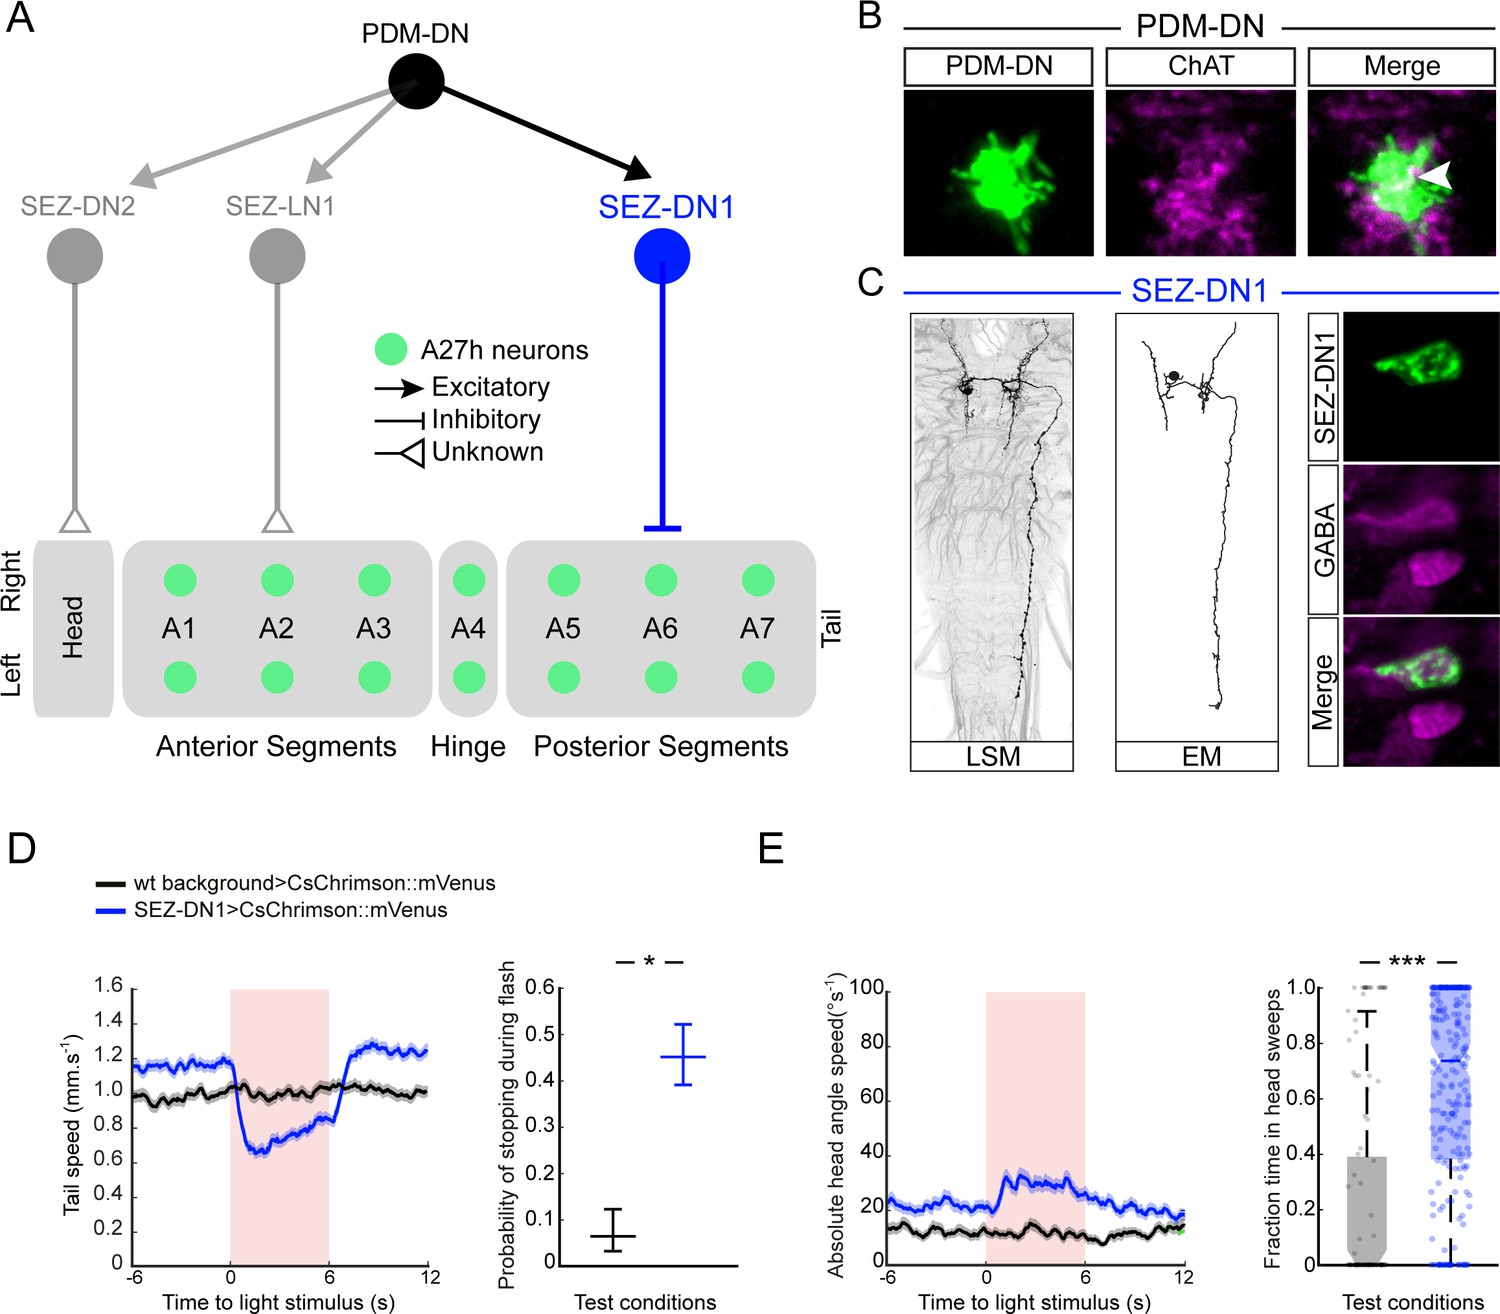 Sensorimotor pathway controlling stopping behavior during chemotaxis